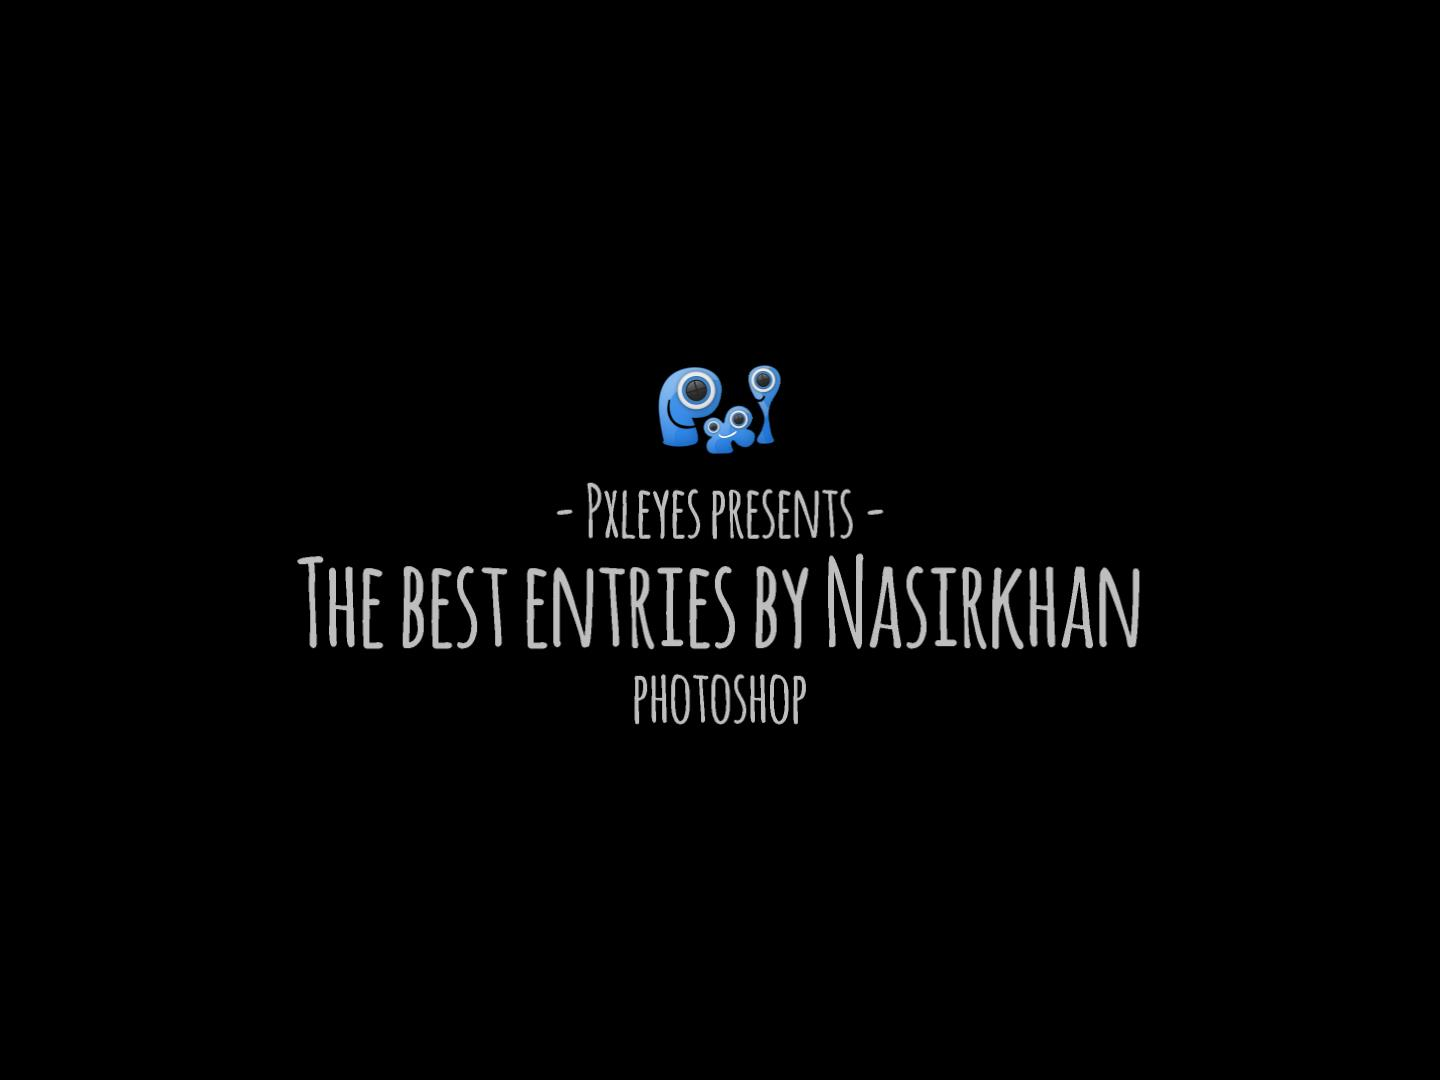 The best entries by Nasirkhan